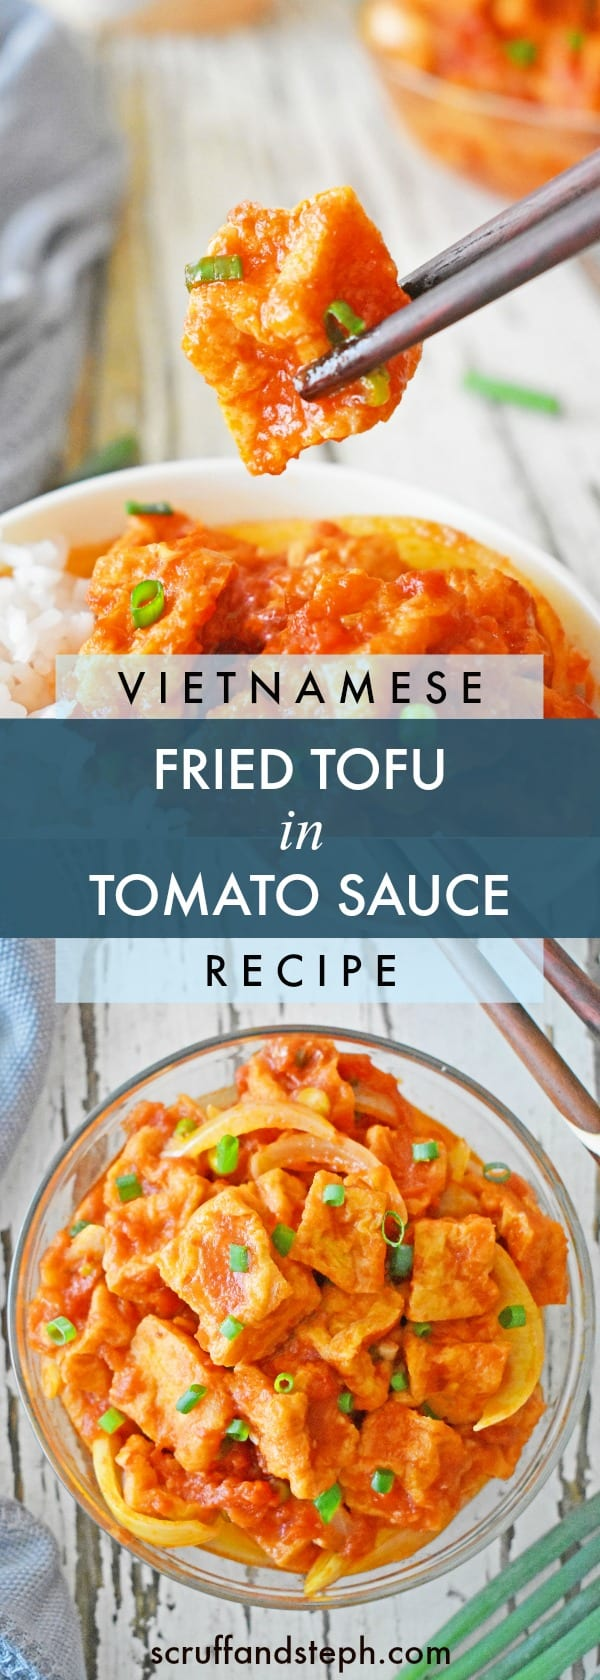 Vietnamese Fried Tofu in Tomato Sauce